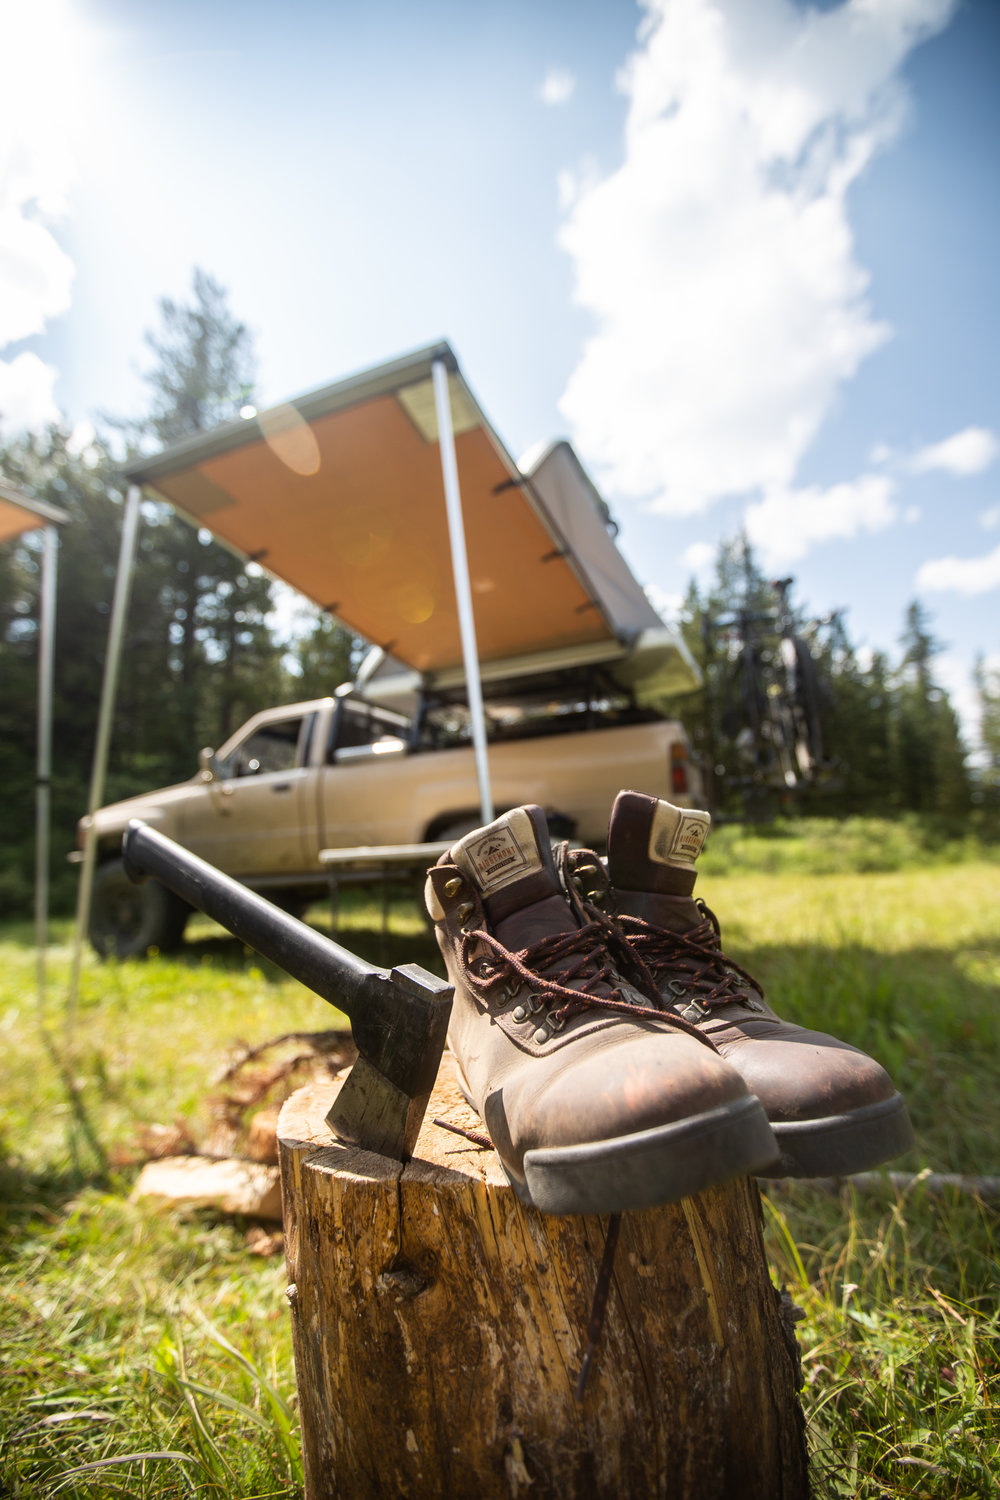 In the spirit of camping, boots, hatchet, trucks and tents.